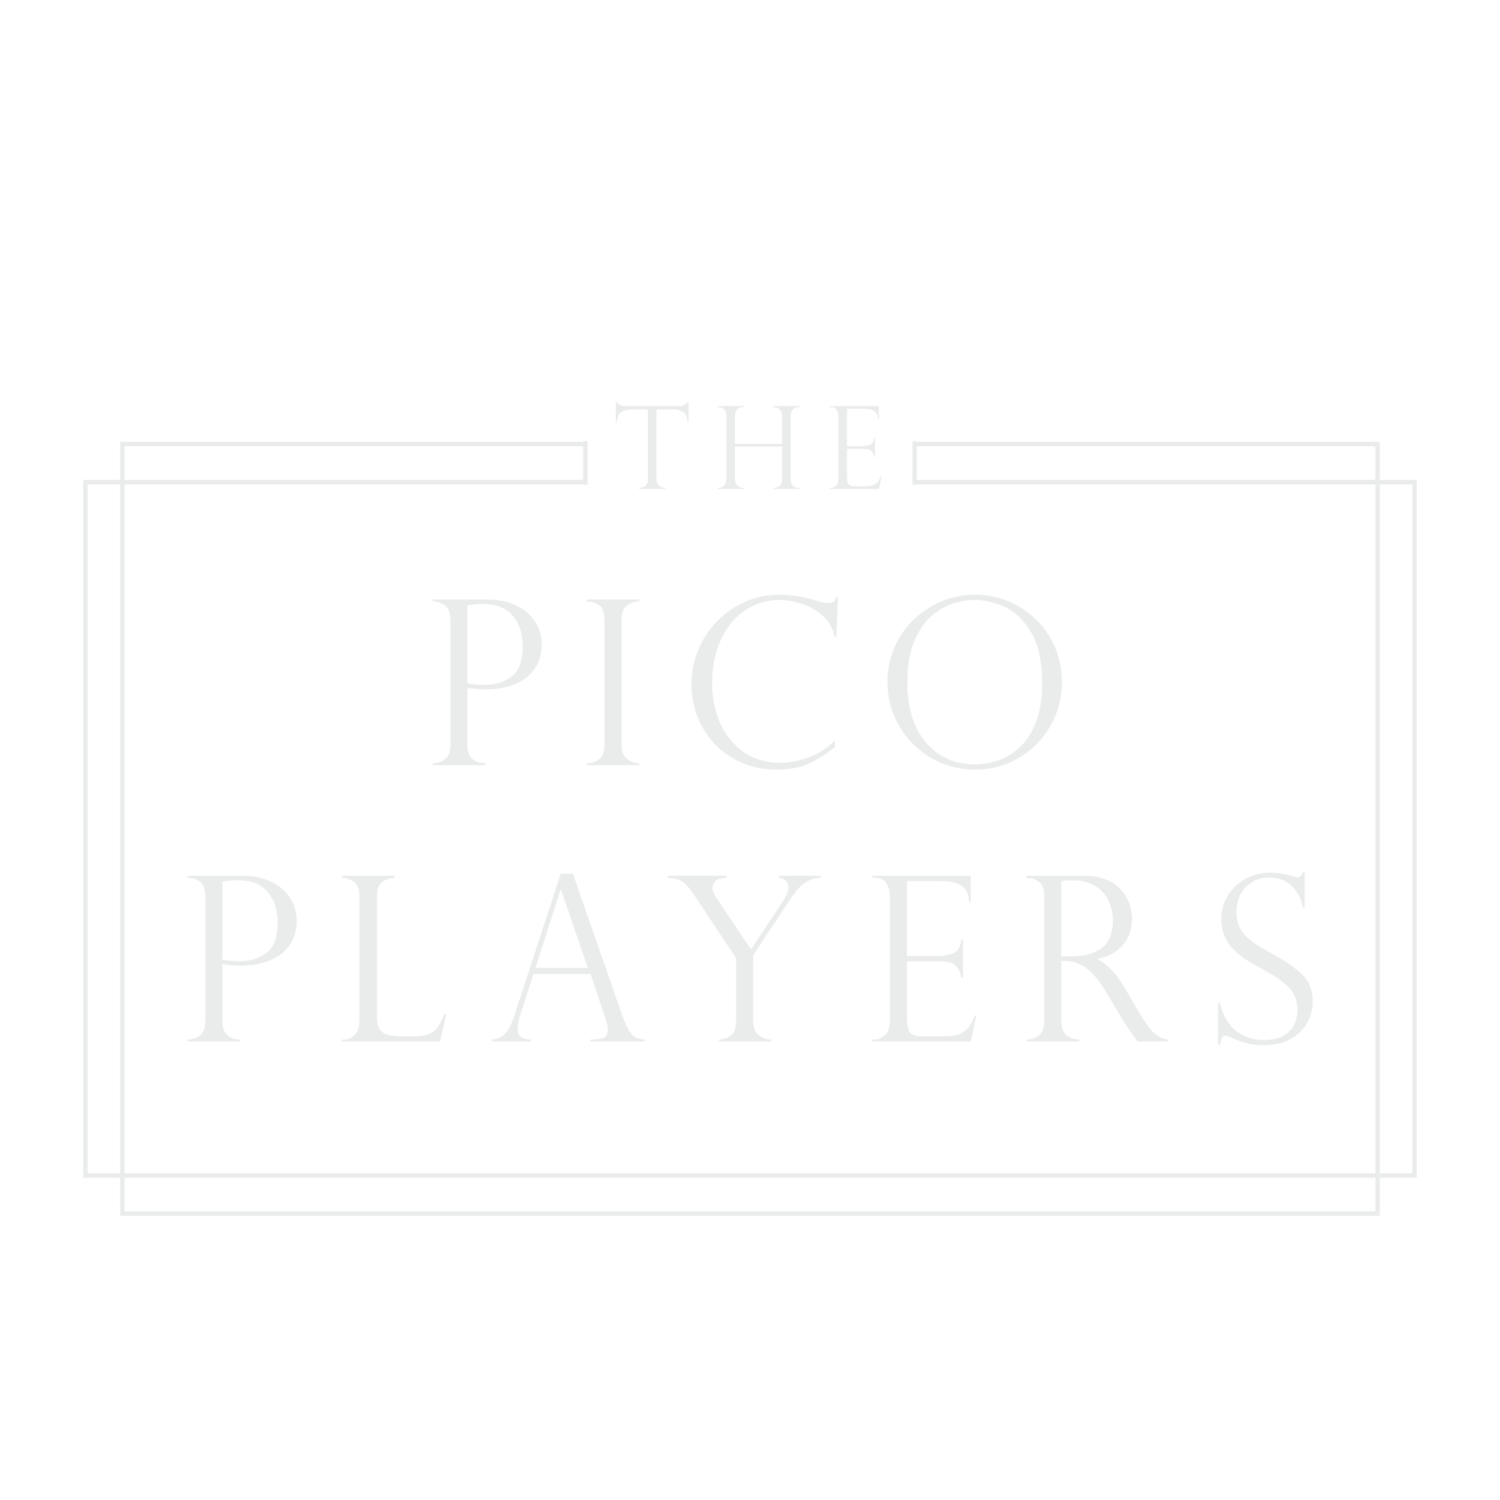 The Pico Players